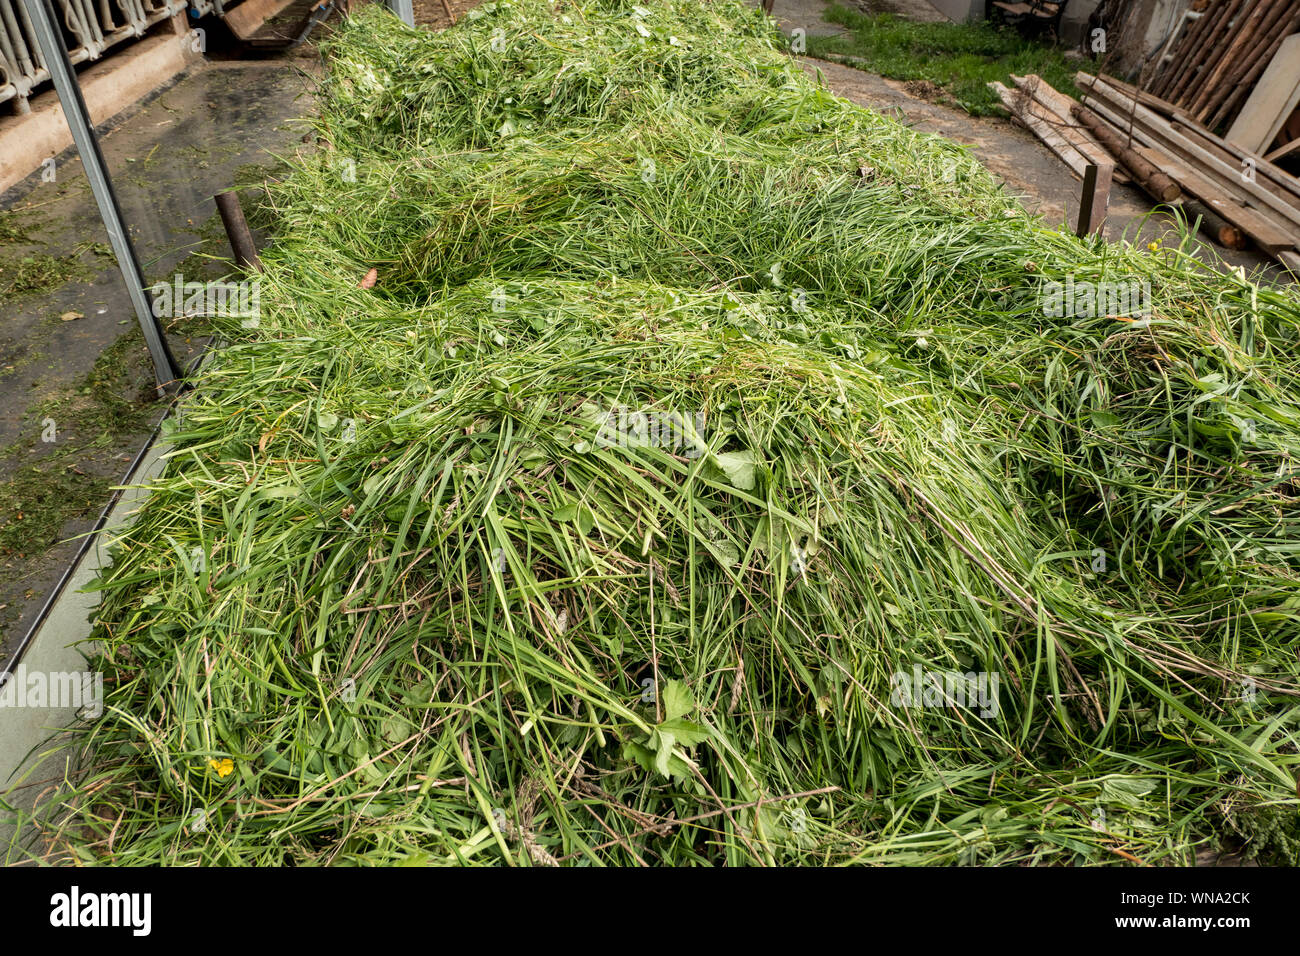 freshly cut grass to feed the cows Stock Photo